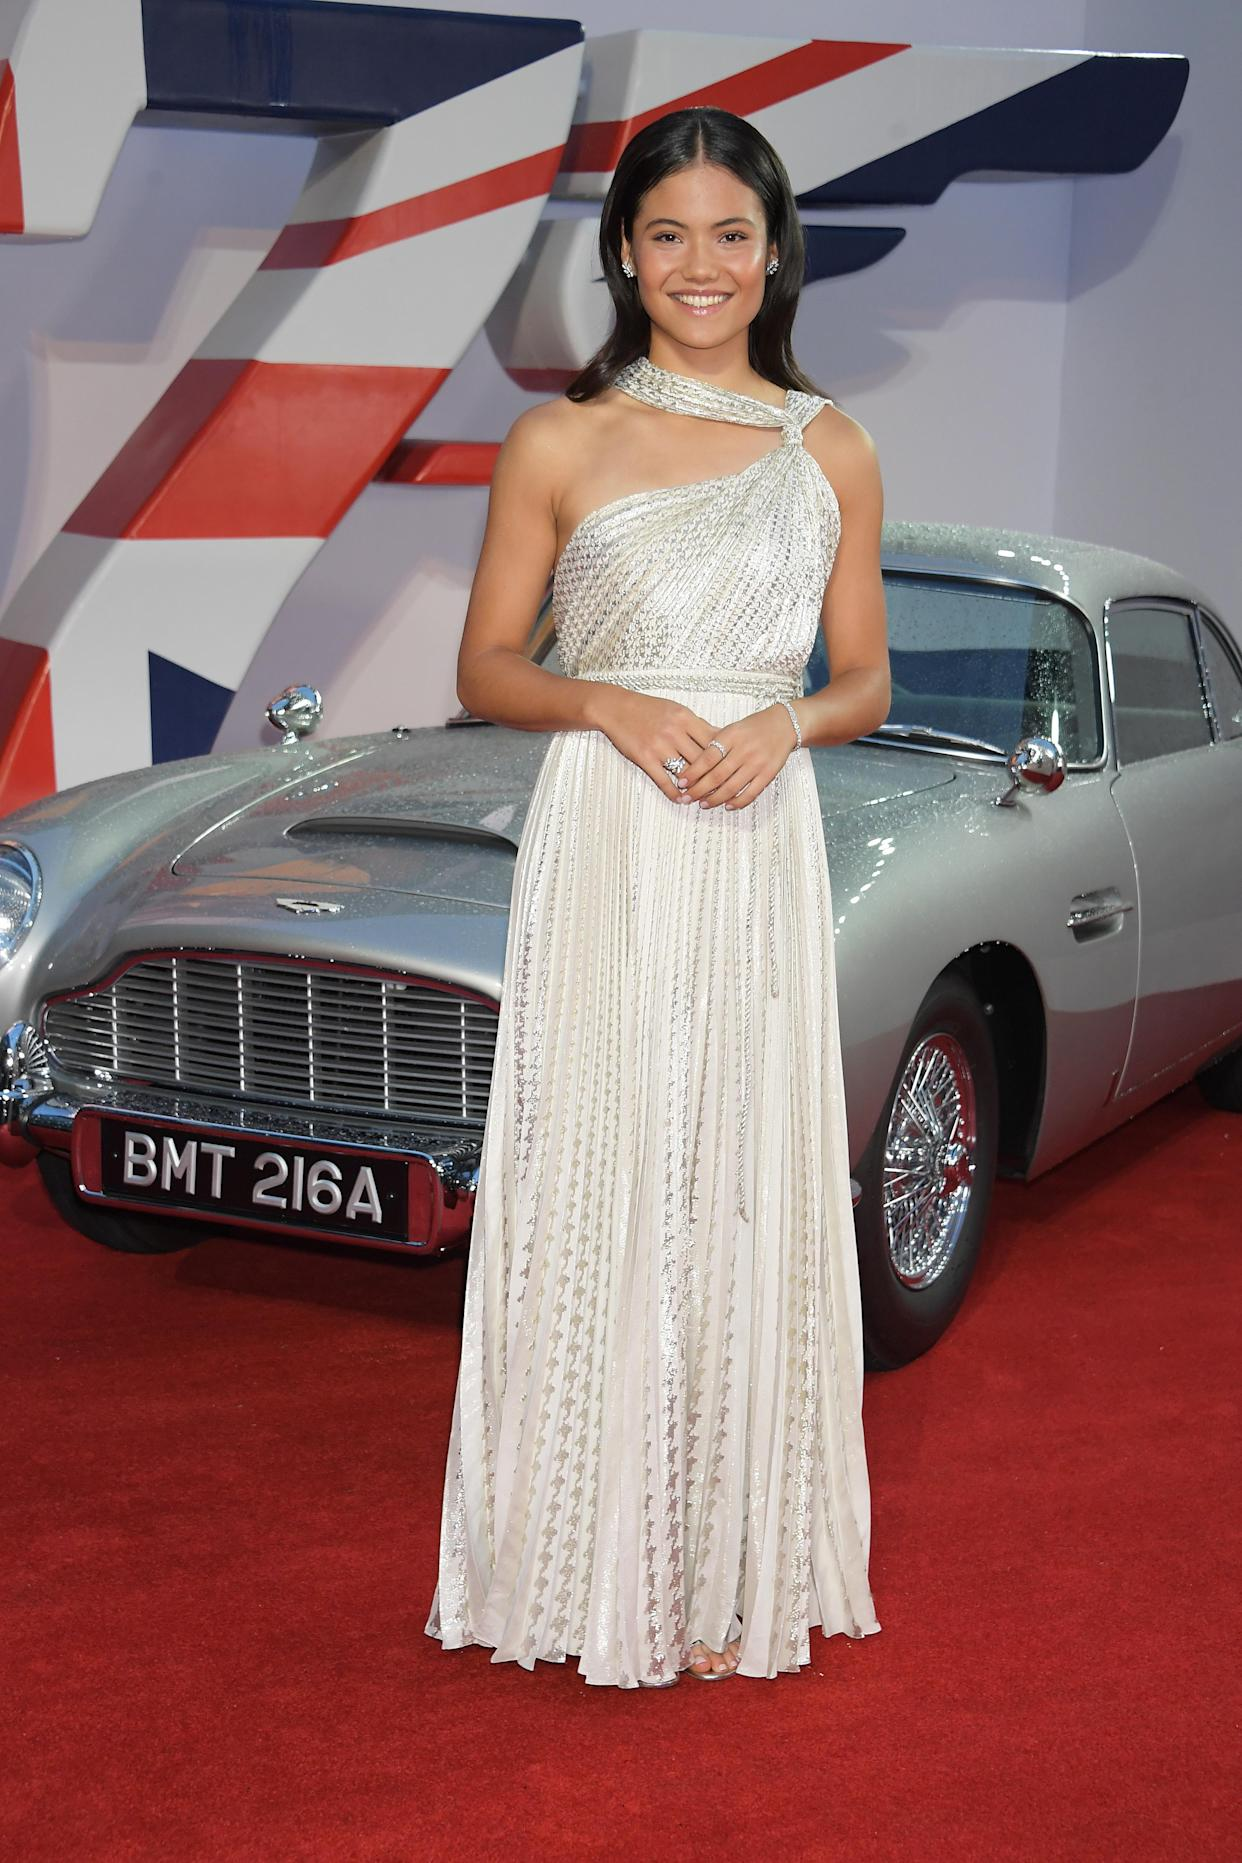 British tennis star Emma Raducanu arrived wearing a stunning silver gown. (Getty Images)